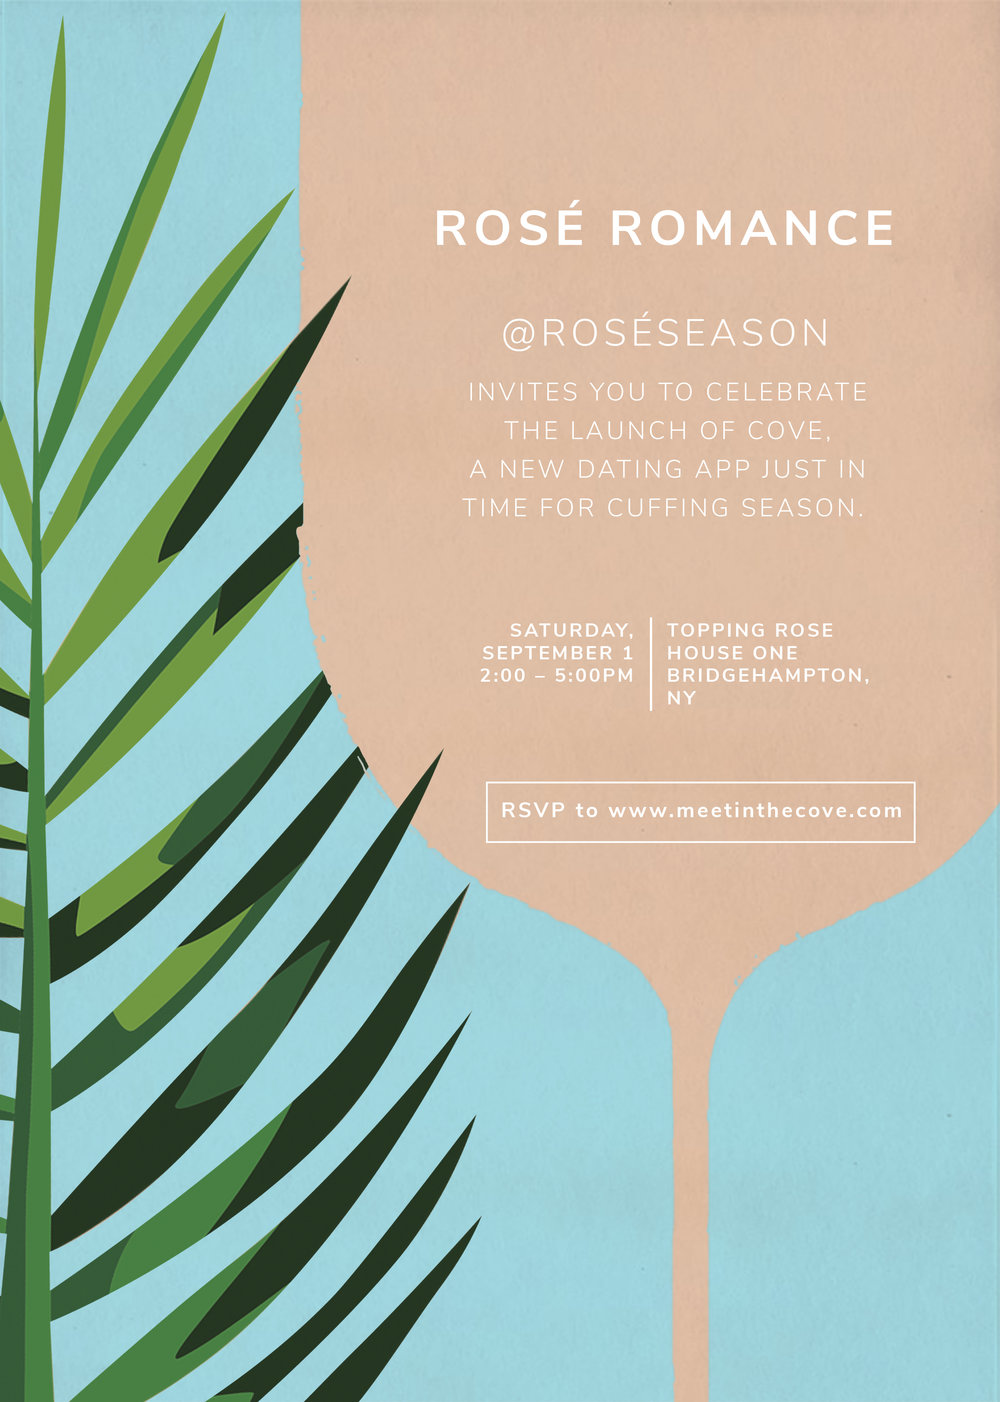 "Rosé Romance  - With Labor Day approaching, this weekend marks the end of another epic summer in the Hamptons.Please join us at Topping Rose House in Bridgehampton this Saturday, September 1st from 2:00-5:00PM, for the launch of Cove, a new dating app for progressing deeper conversations, without losing time! ""Cuffing season"" is almost here which means we are putting Cove's matchmaking skills to the test as we say goodbye to summer. In the spirit of #RoséRomance, join us for speed dating, beats by DJ Rosé, a DIY flower bouquet station by East Olivia, and of course, curated Cove cocktails.Free admission.** Guests will need to sign a release form for Bravo TV's Summer House."